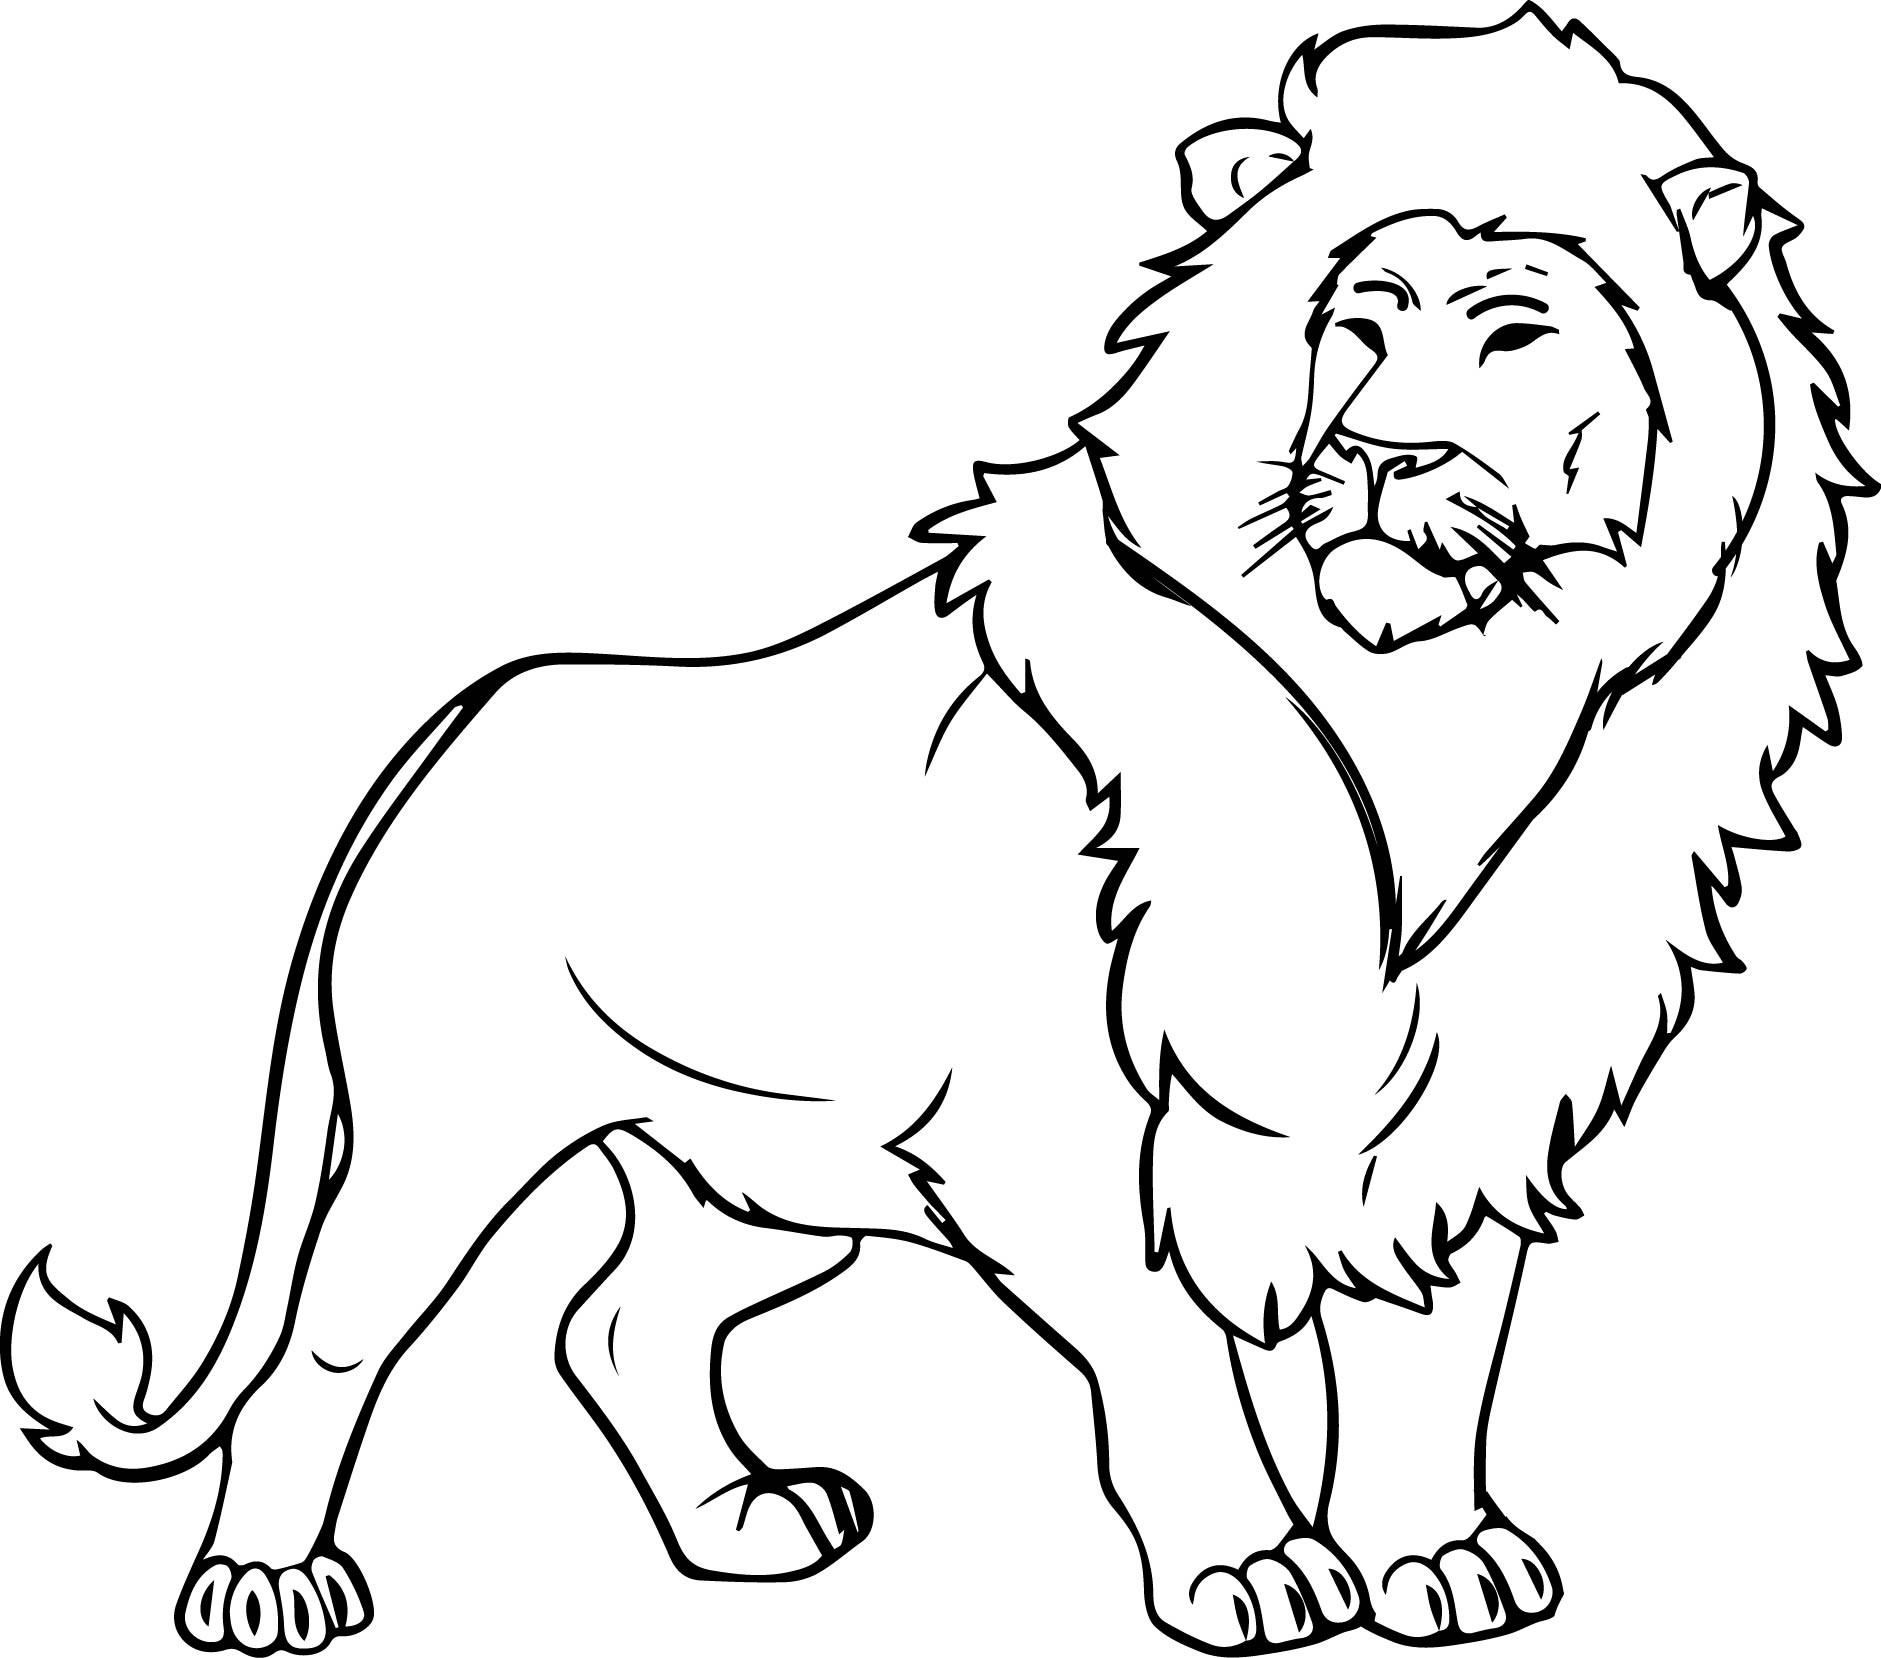 coloring pages of lion lion color drawing at getdrawings free download pages coloring of lion